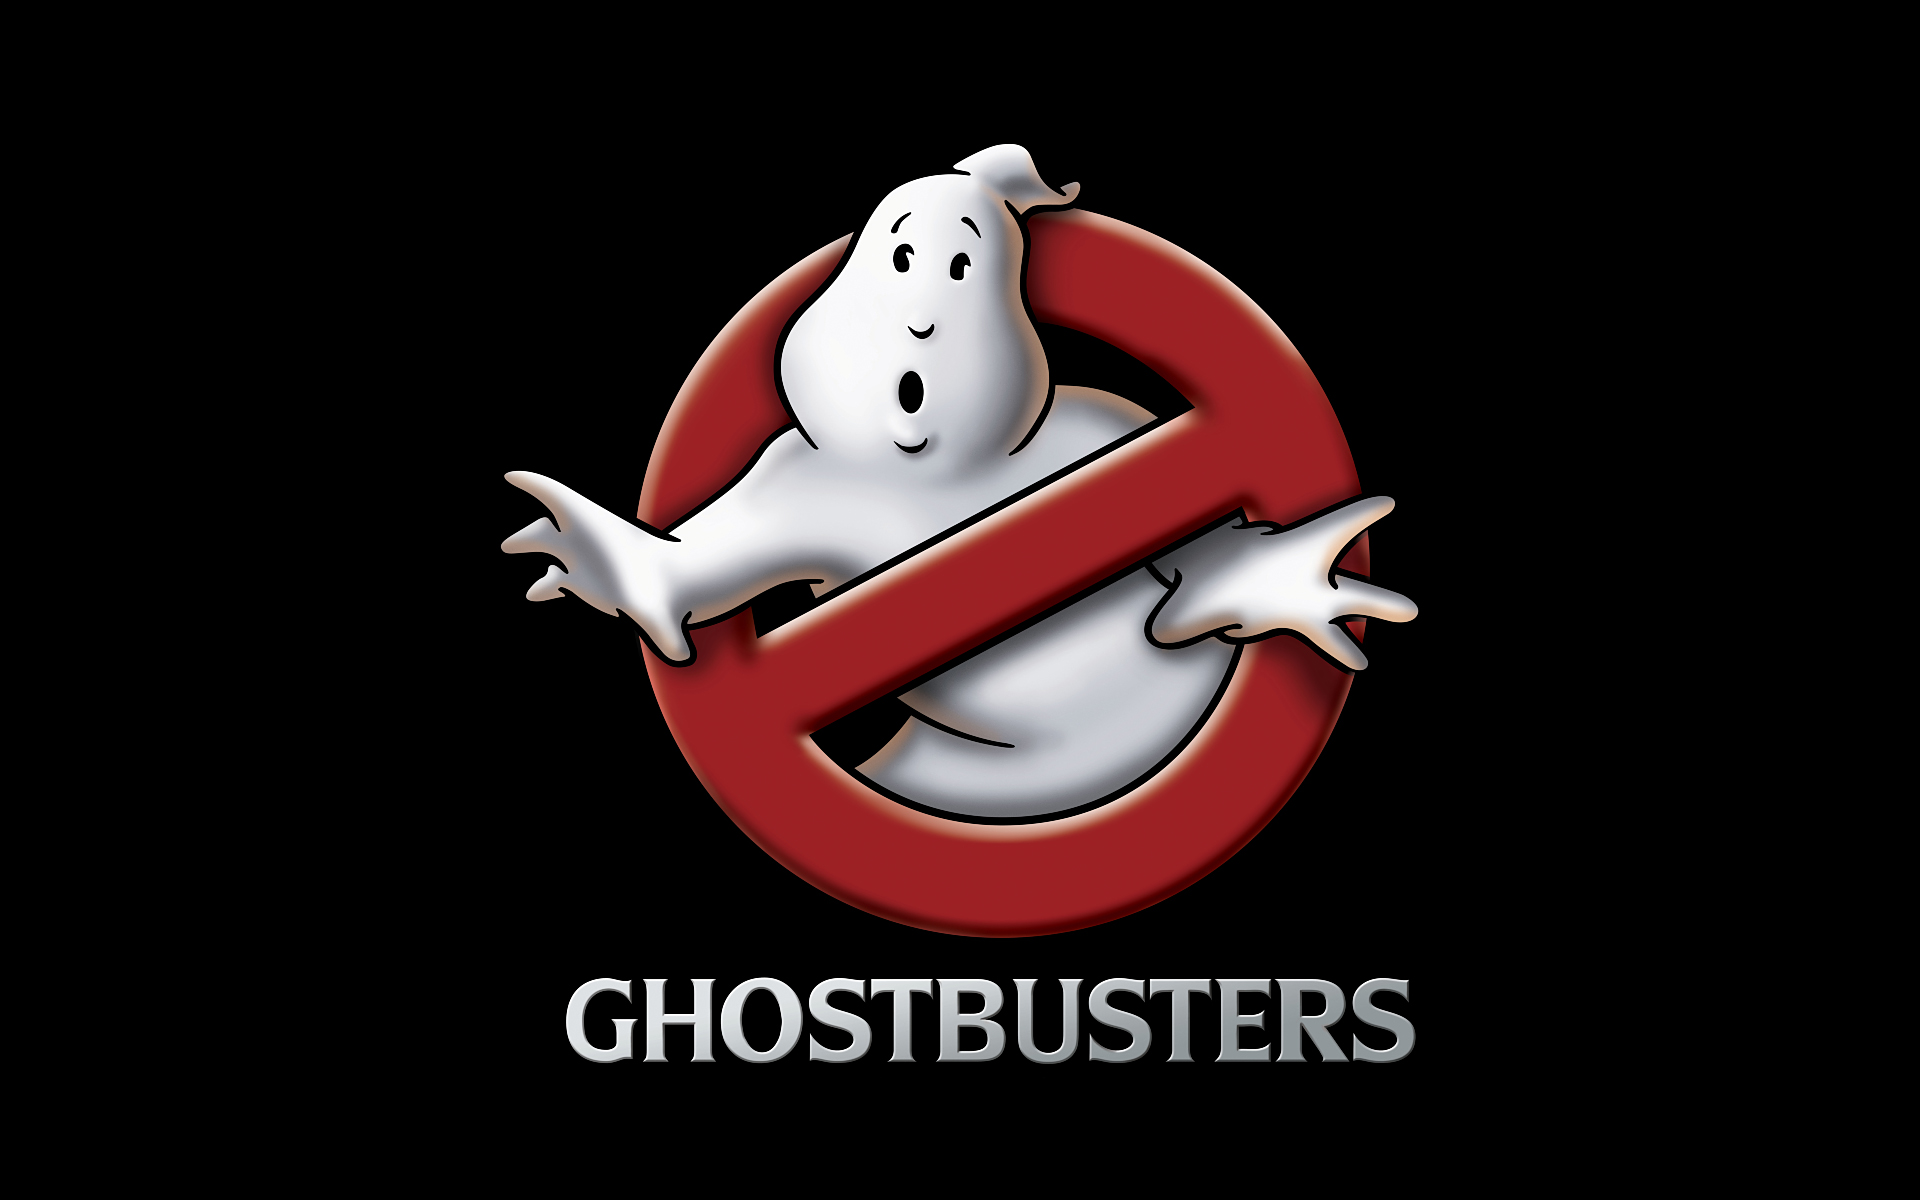 ghostbusters-logo-from-the-2009-video-game